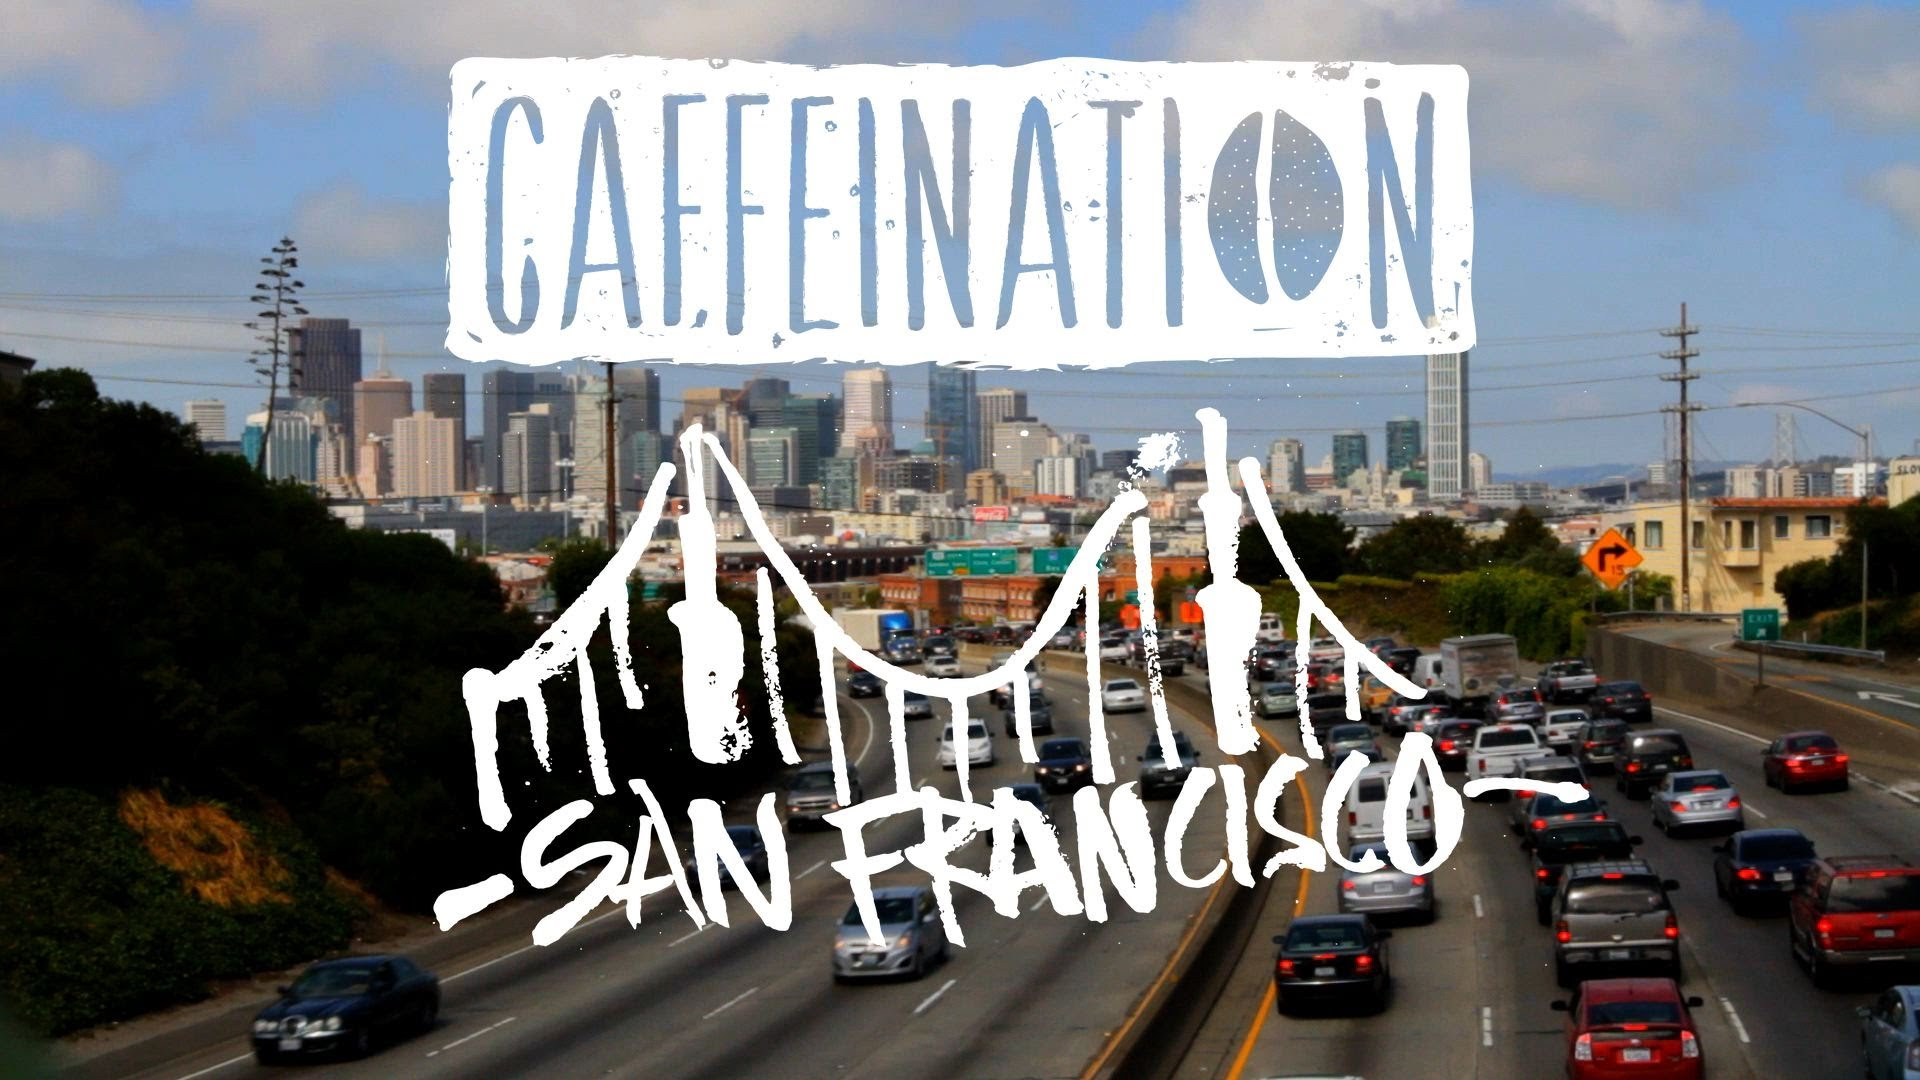 Caffeination, A New Webseries About Coffee Culture Across the United States